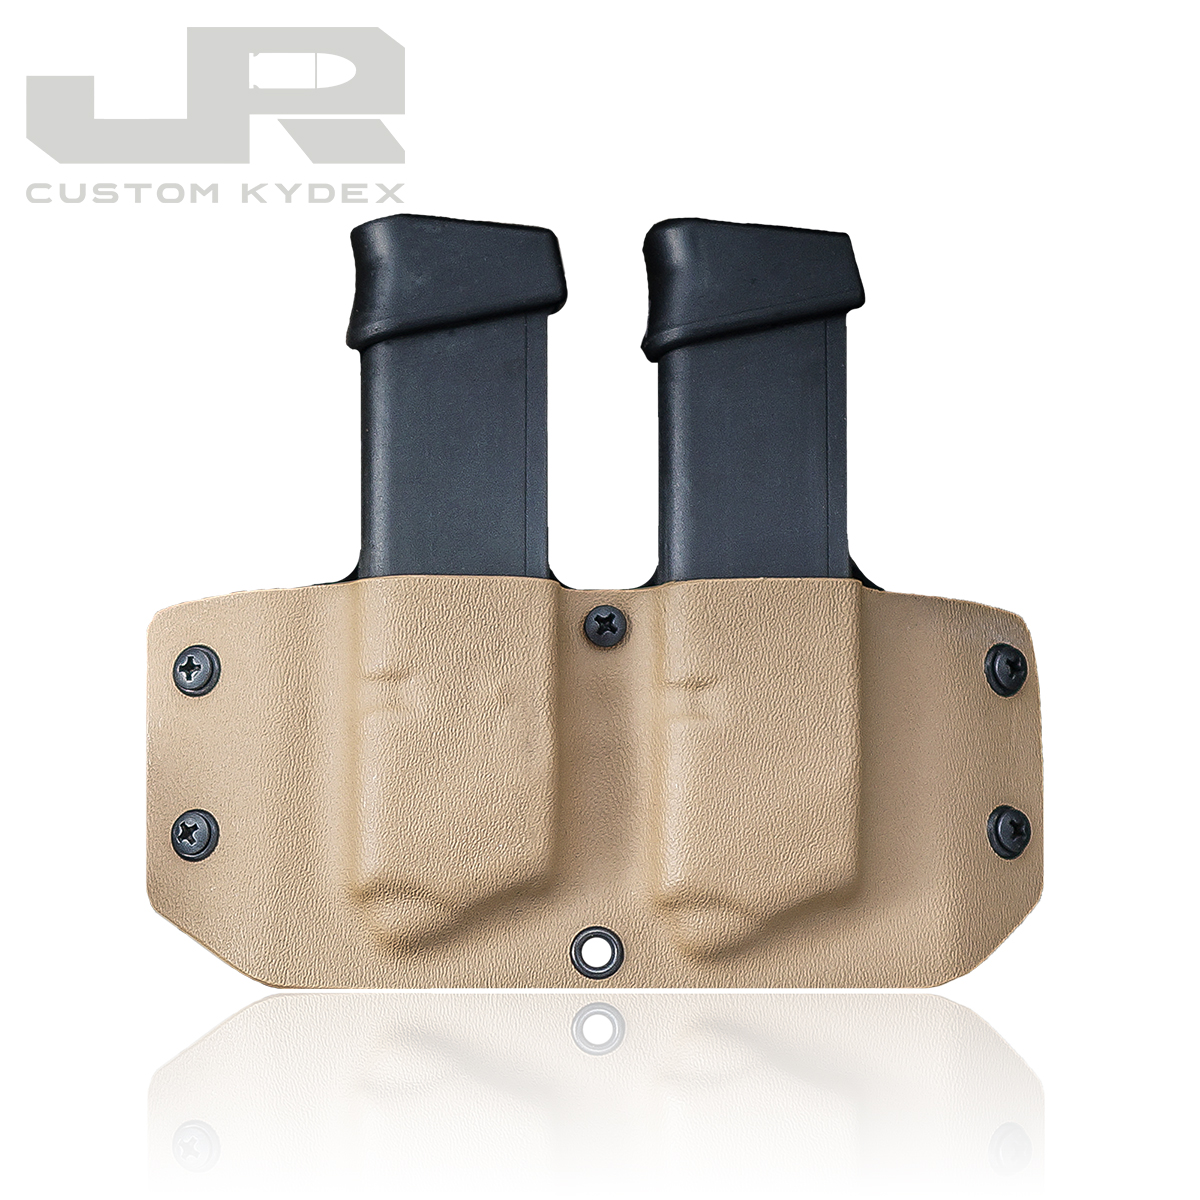 JR Custom Kydex Magazinholster Double